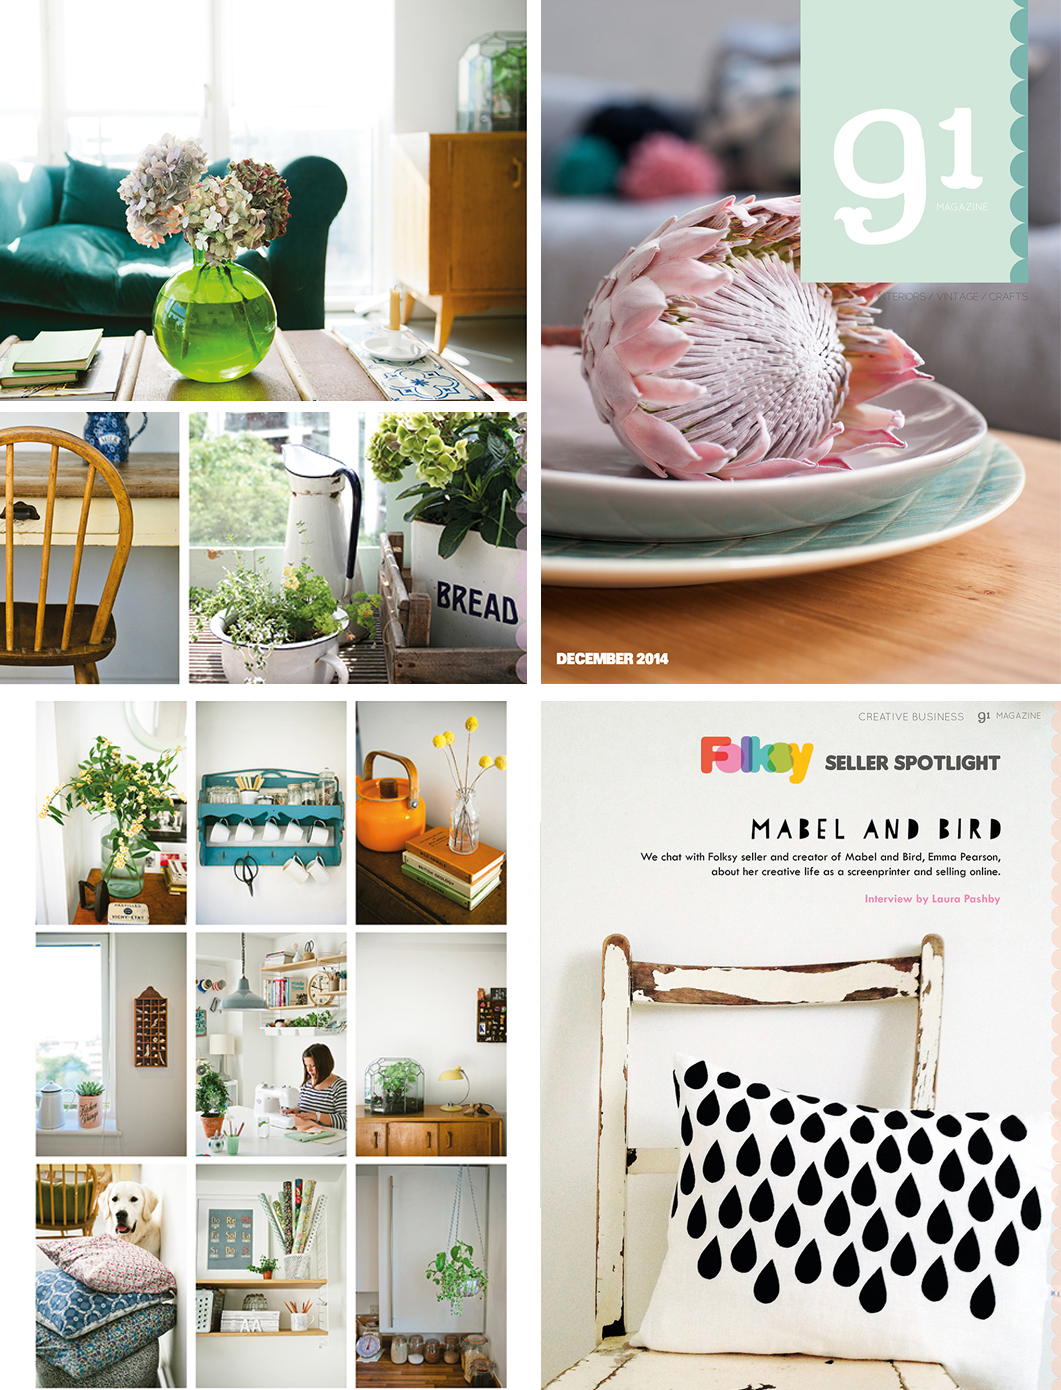 91 magazine giveaway, katy orme, apartment apothecary, mabel and bird, competition